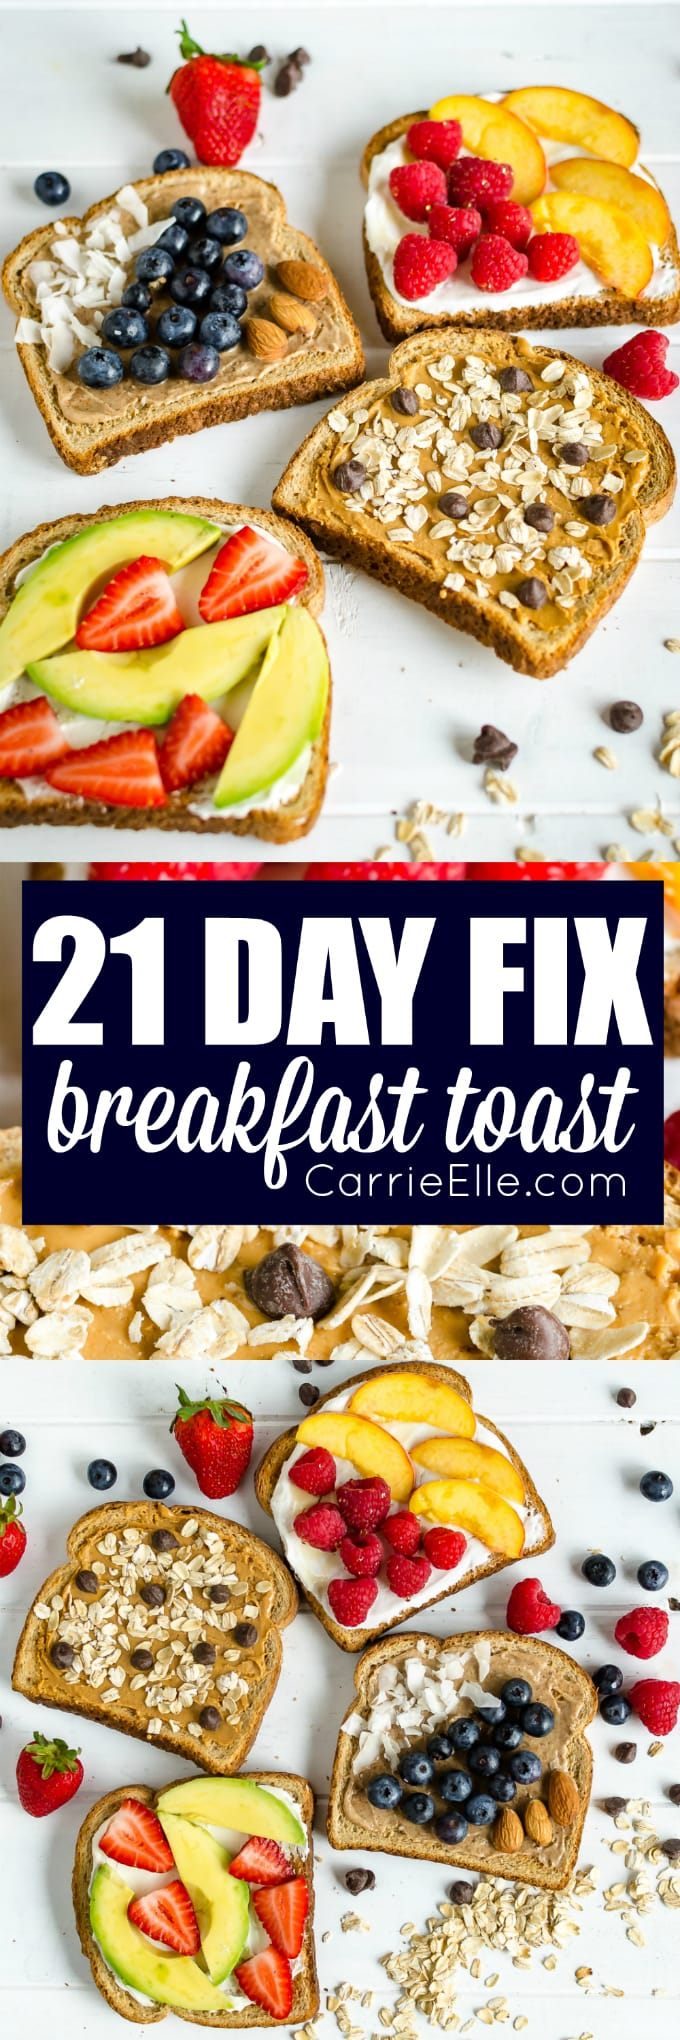 21 Day Fix Breakfast Toast